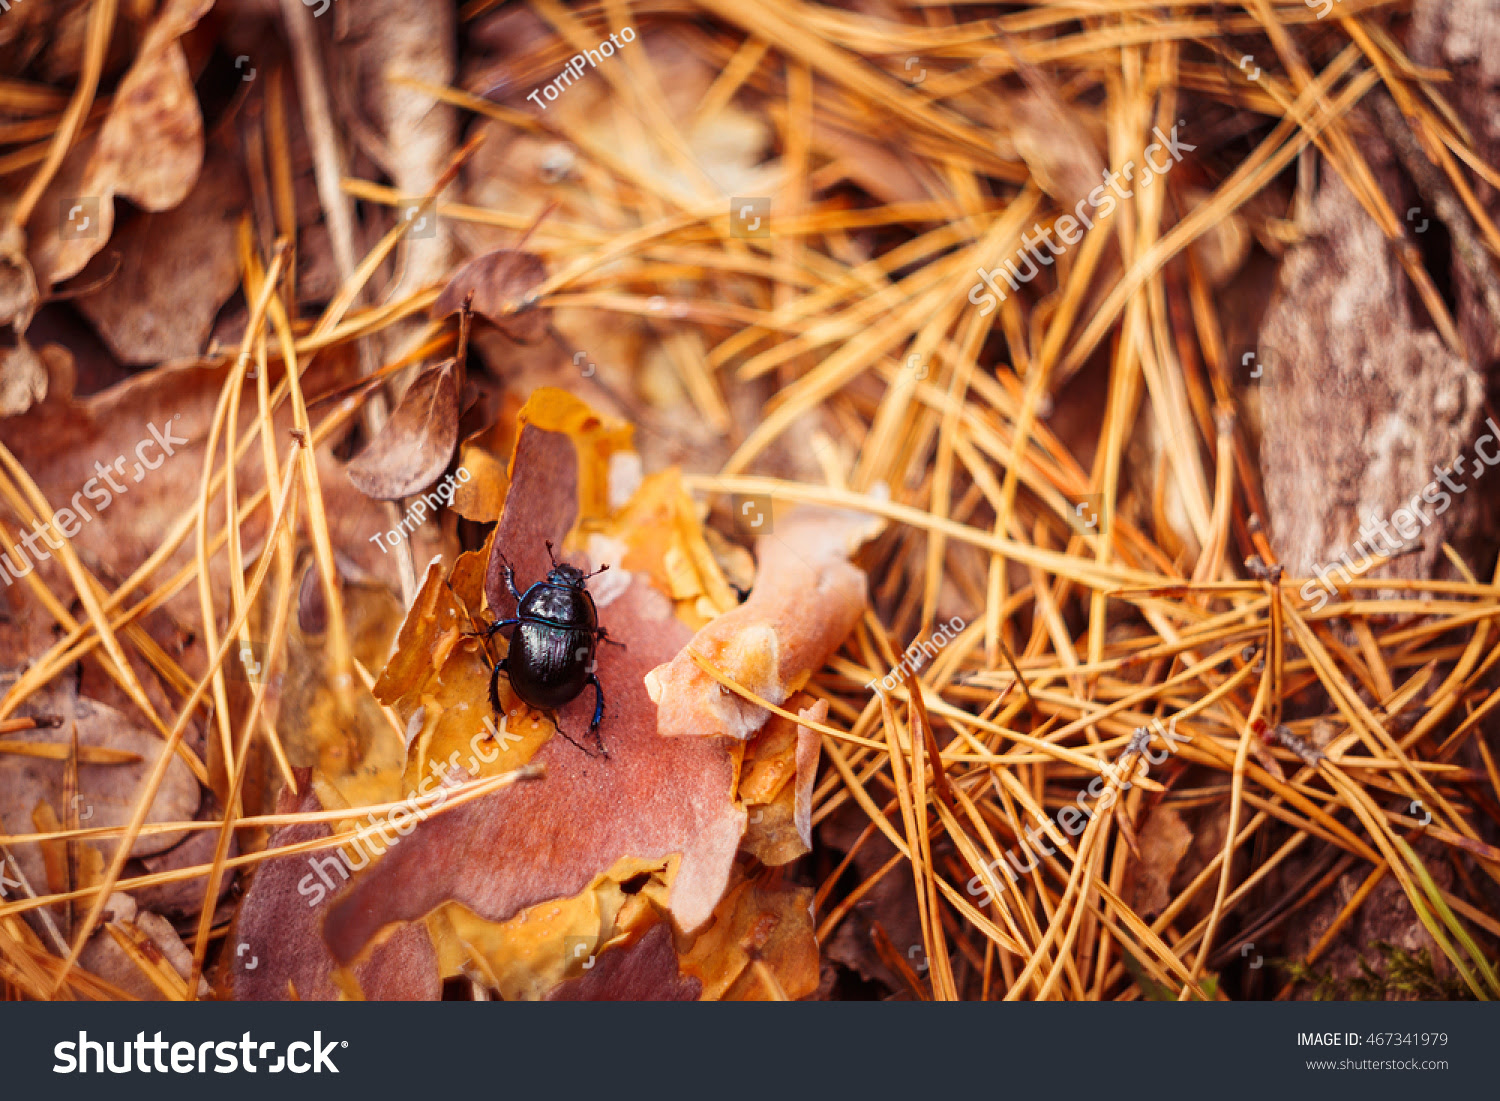 Autumn forest background with black earth-boring dung beetle